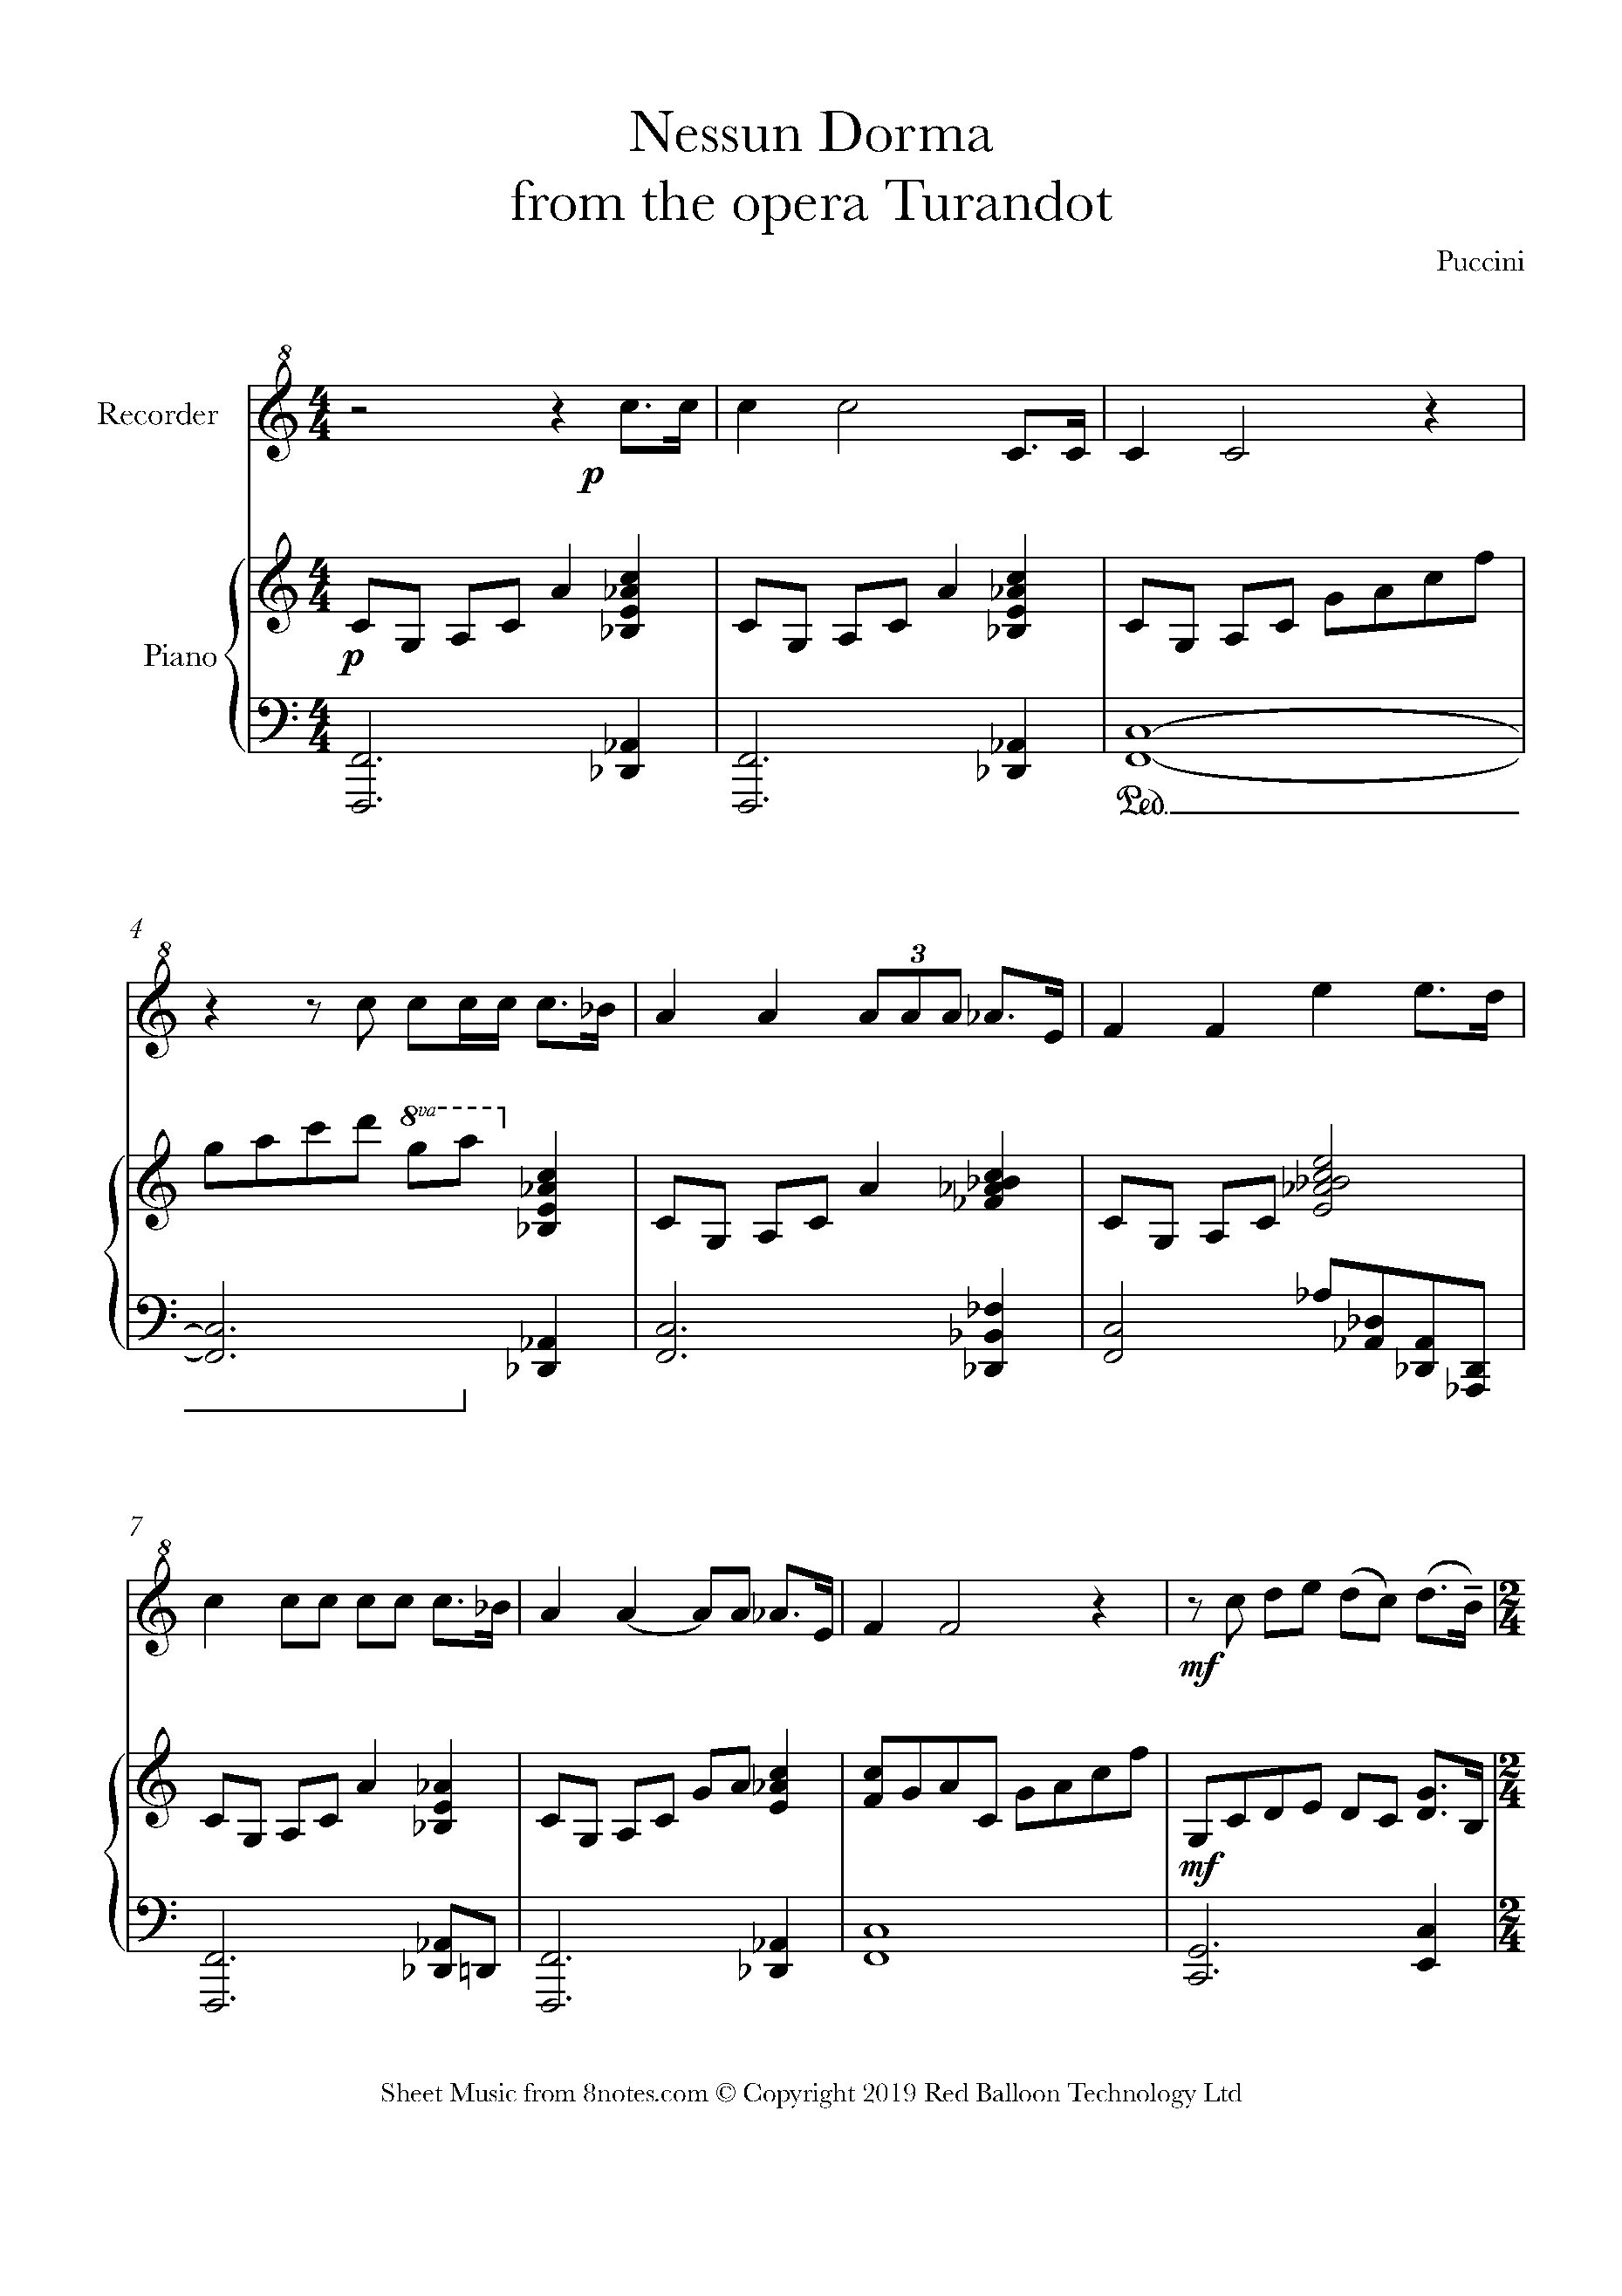 Puccini - Nessun Dorma from Turandot Sheet music for Recorder - 8notes.com